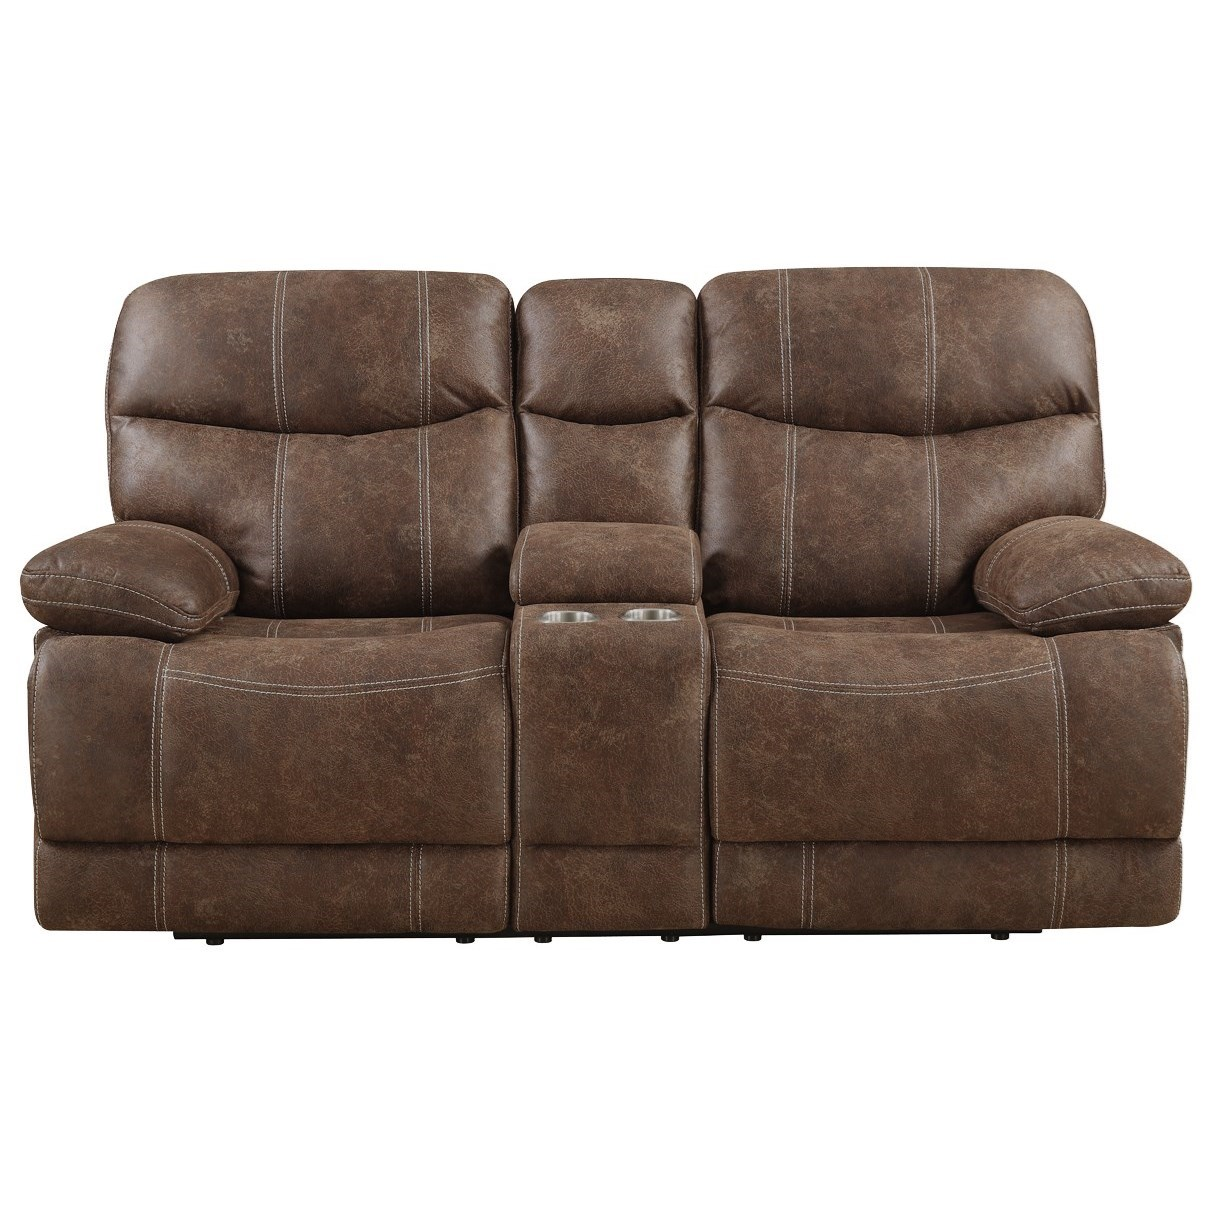 Earl Motion Loveseat with Console by Emerald at Northeast Factory Direct